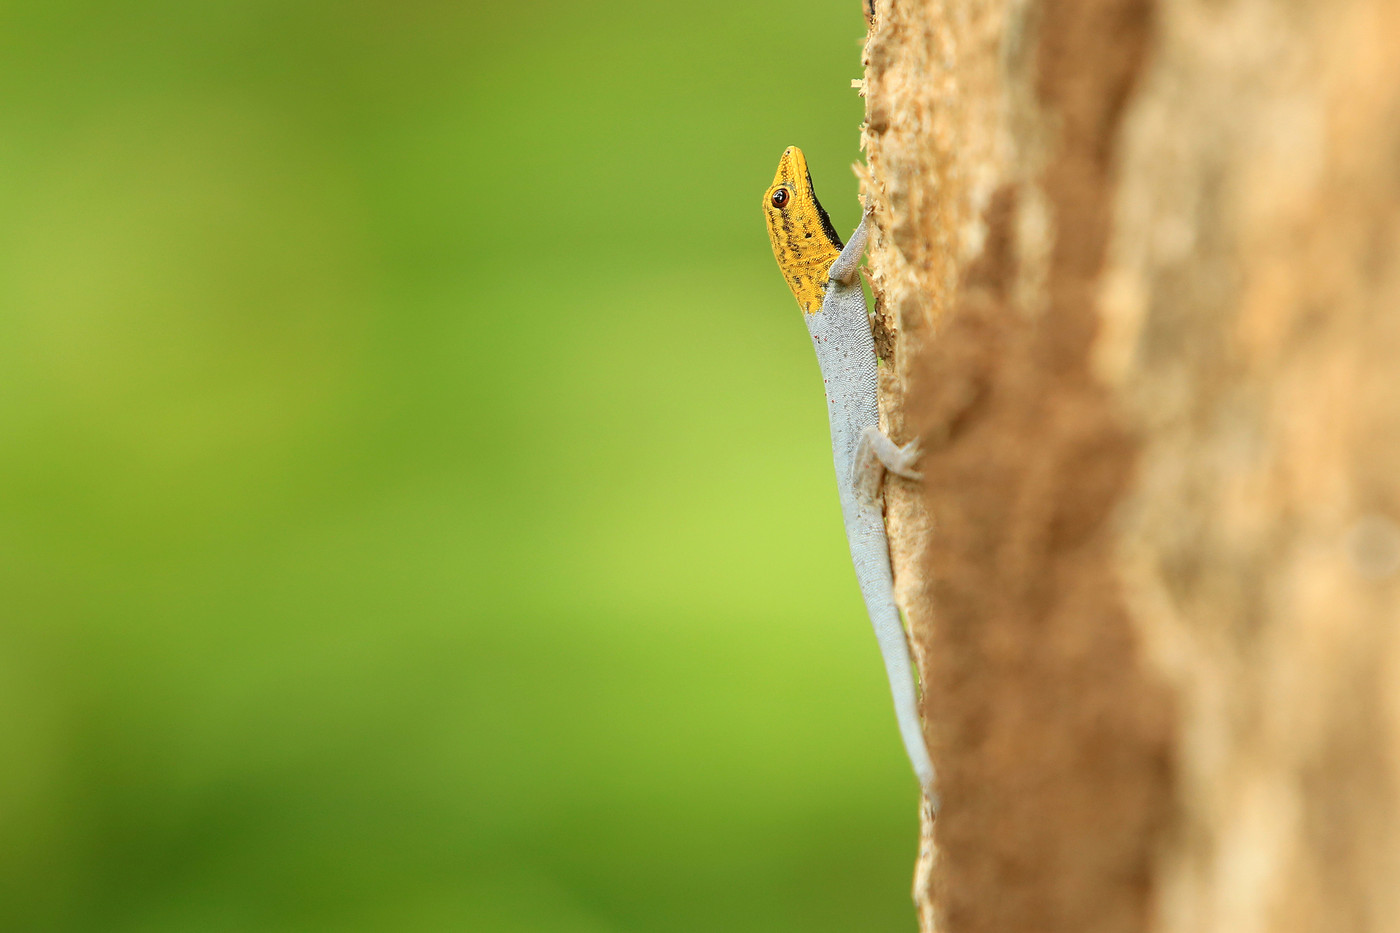 Yellow-headed Dwarf Gecko in Pangani, Tanzania